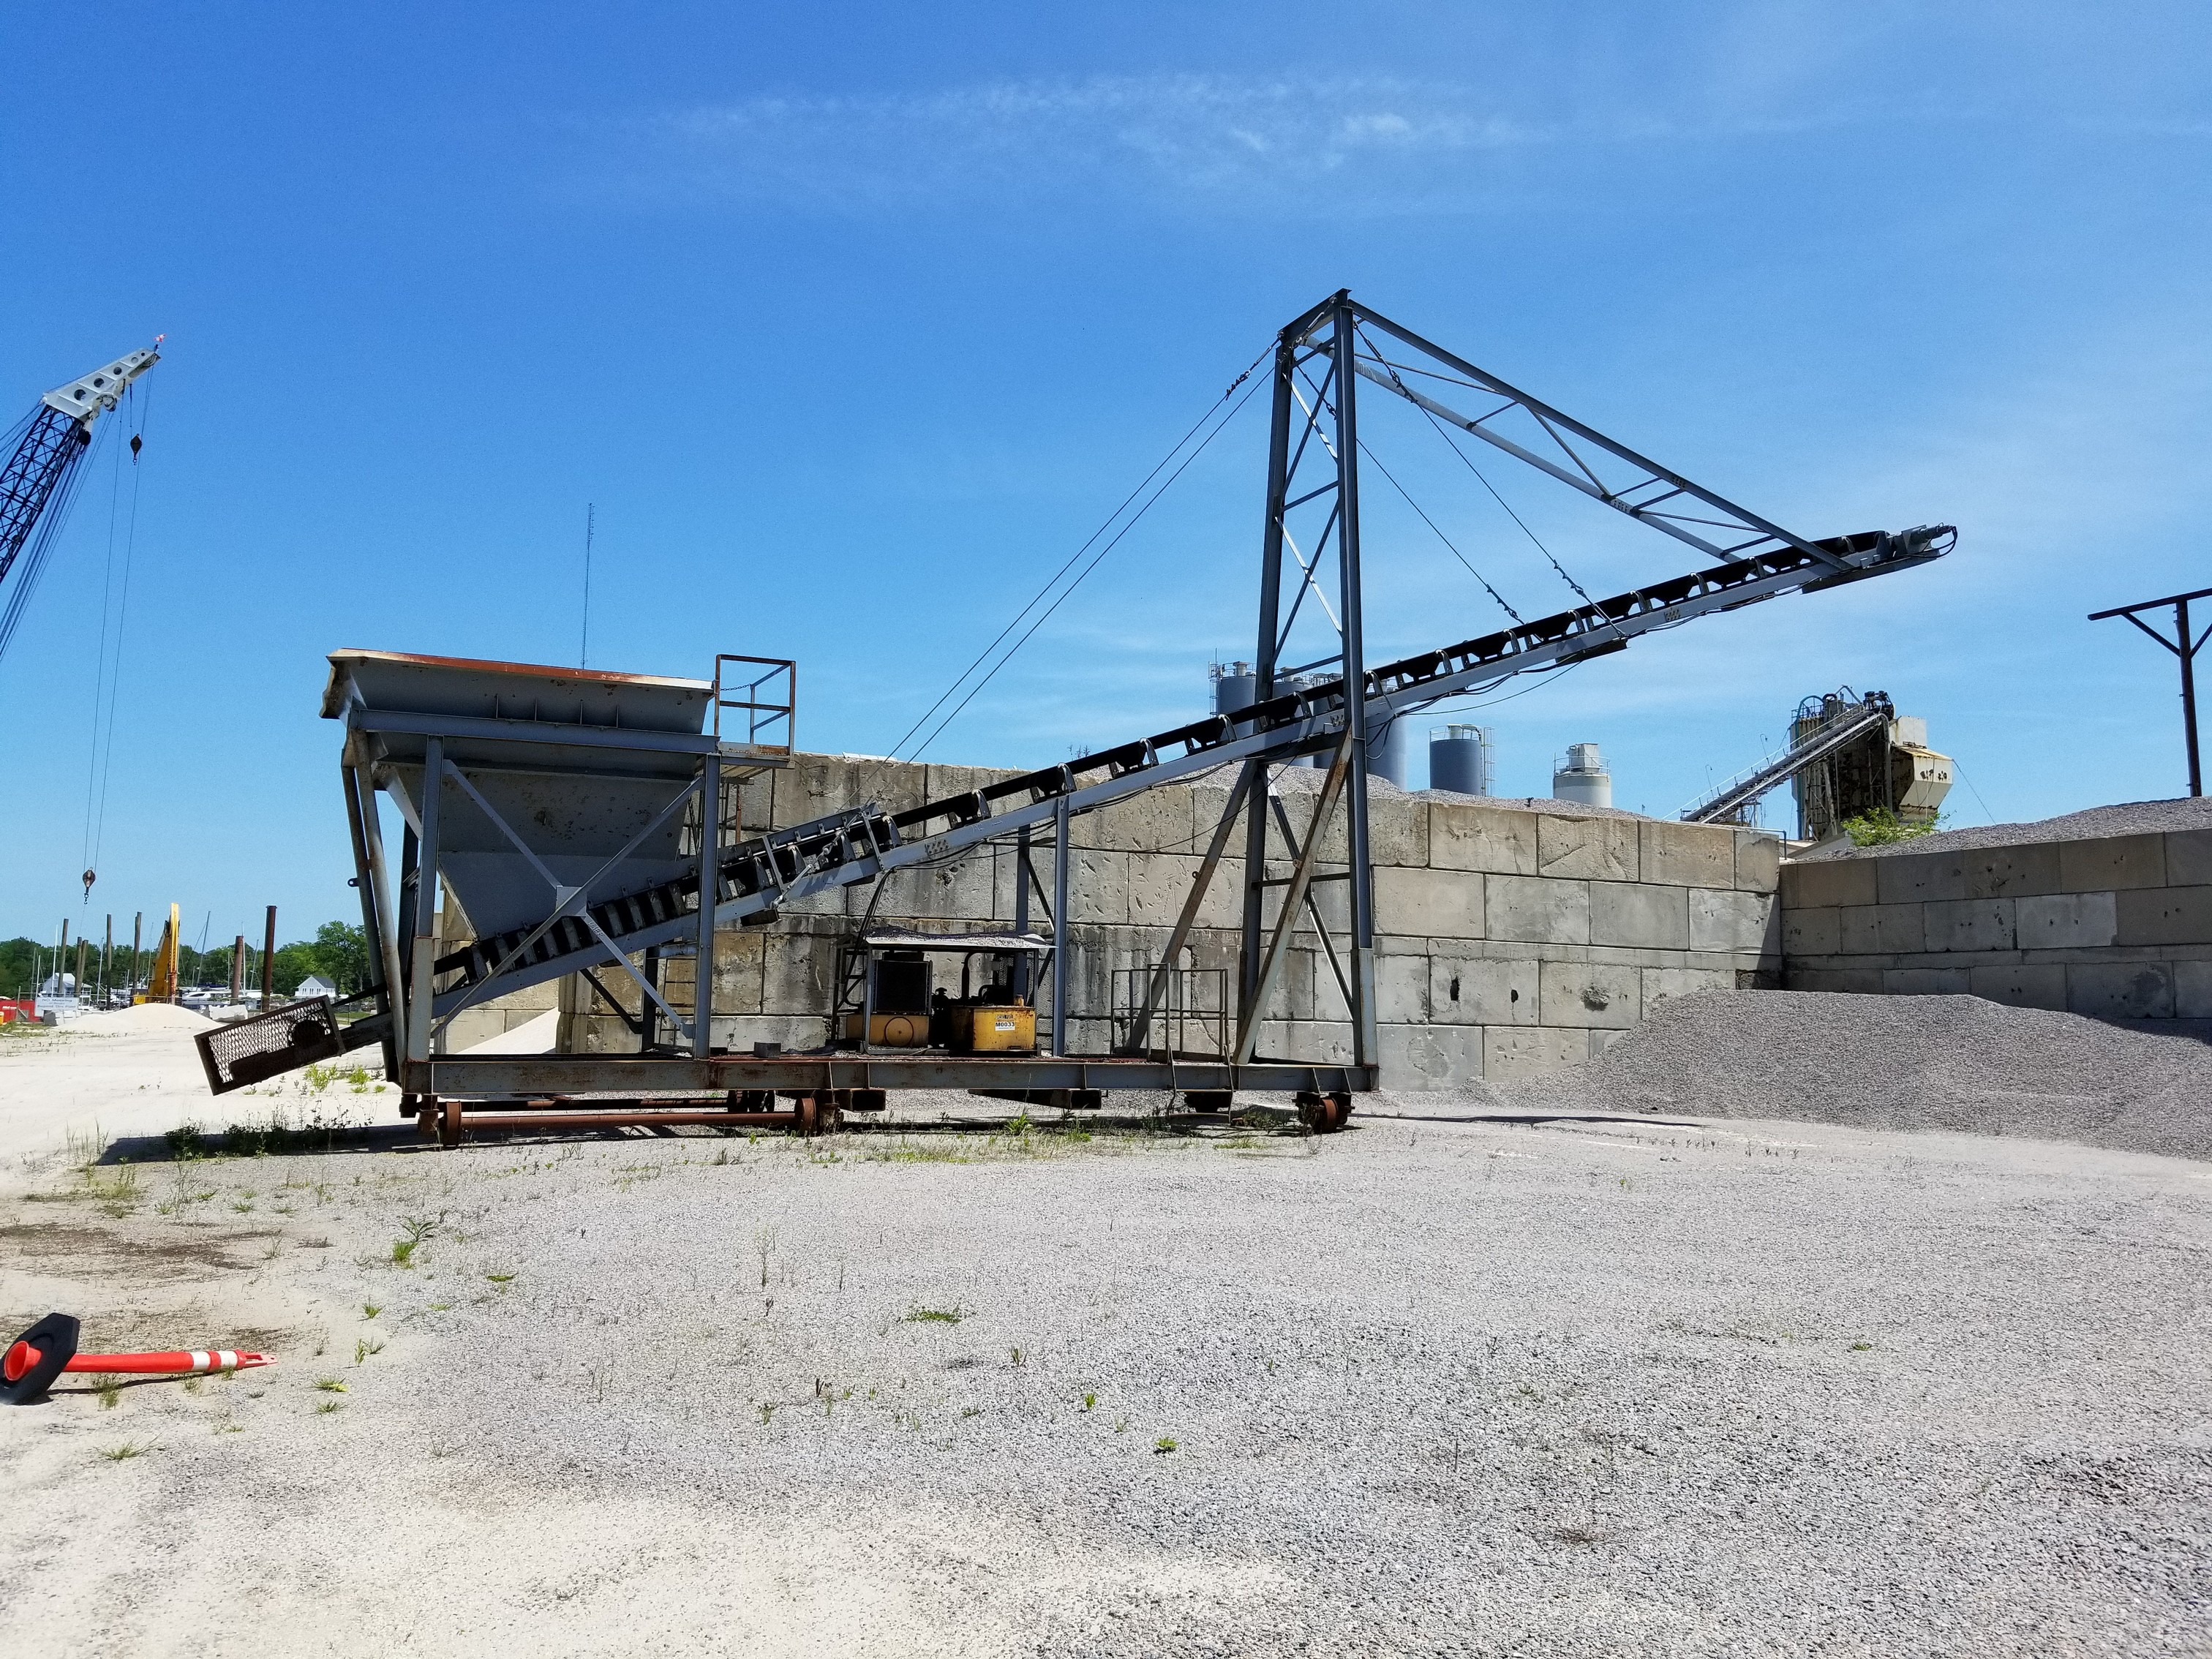 BAYSHORE CONCRETE PRODUCTS CORPORATION - DAY 2 OF 2